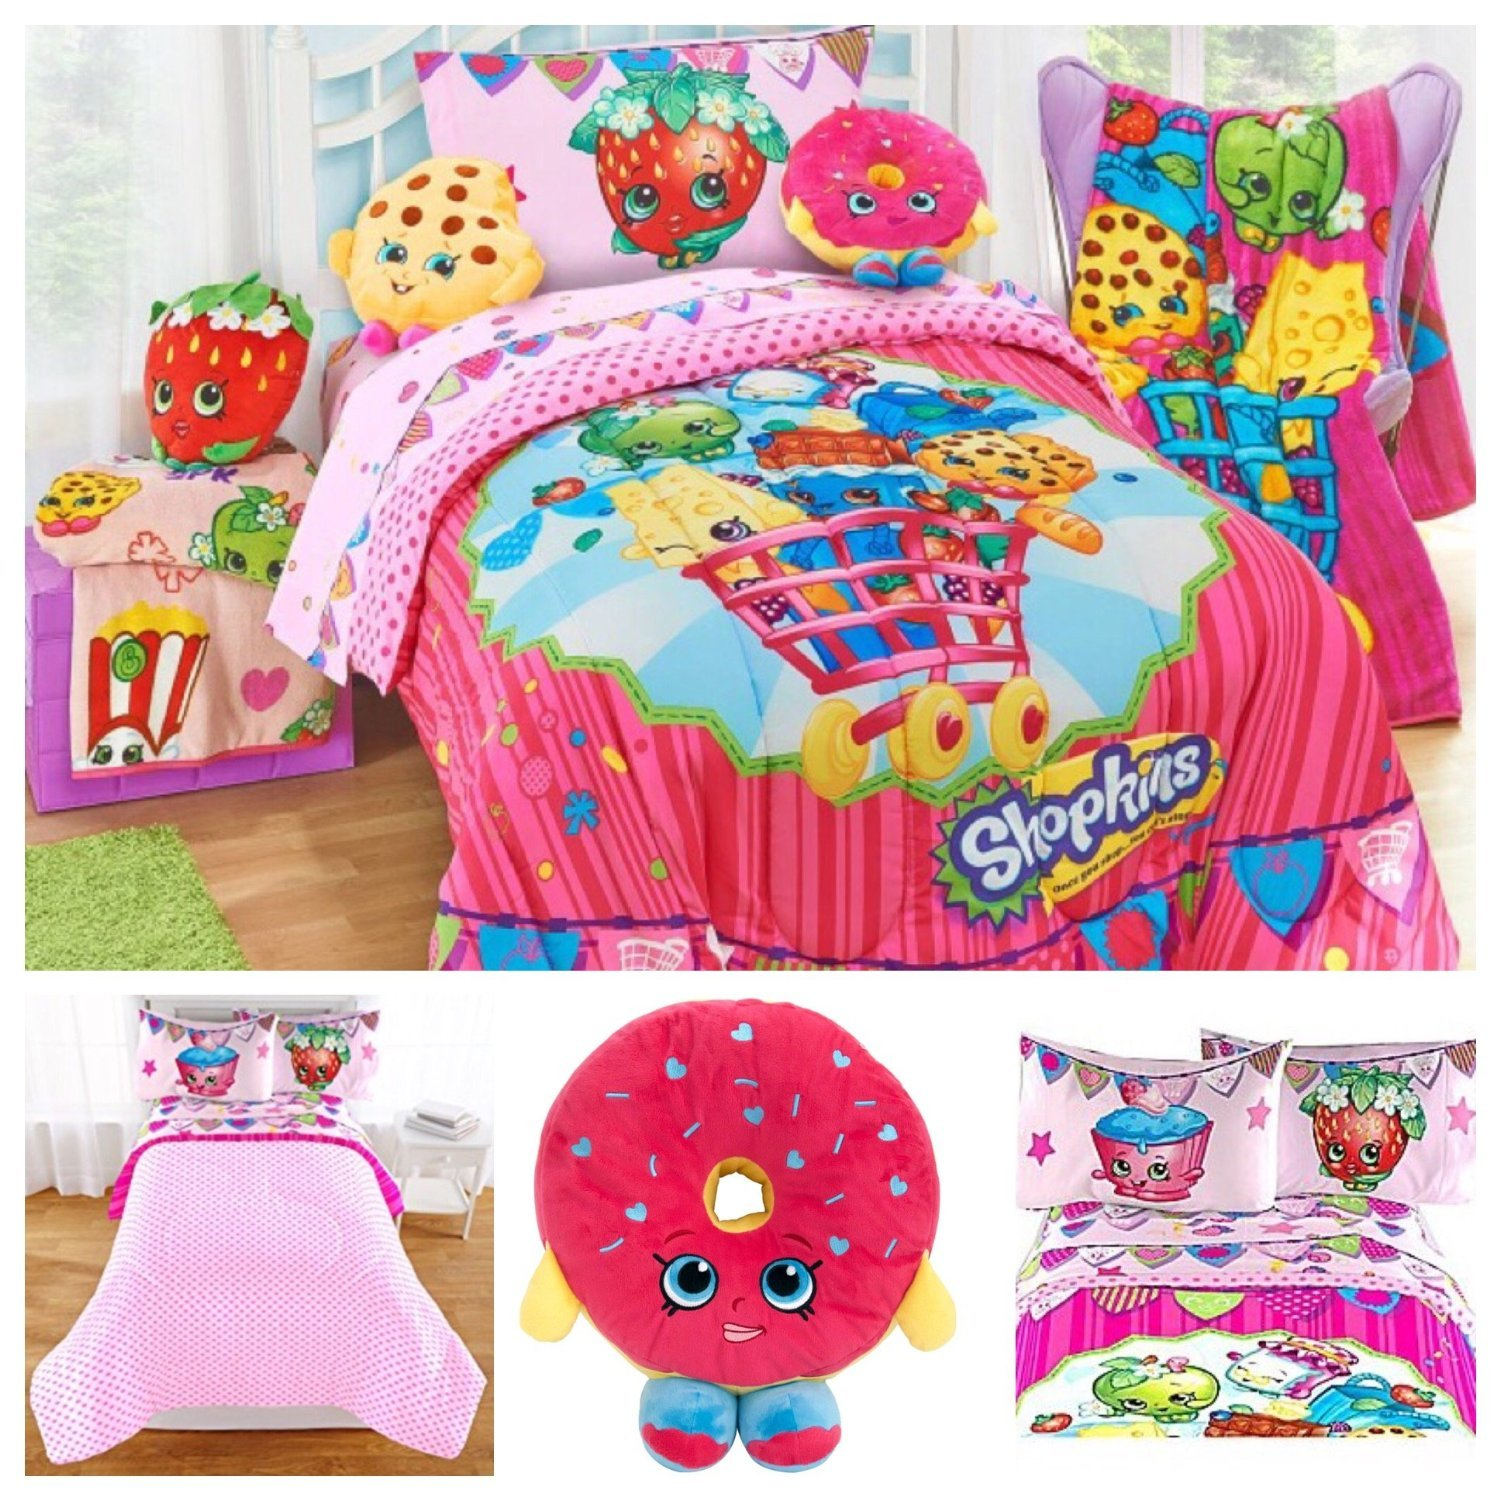 Shopkins Kids Complete Bedding Comforter Set with D'lish Donut Scented Pillow - Twin